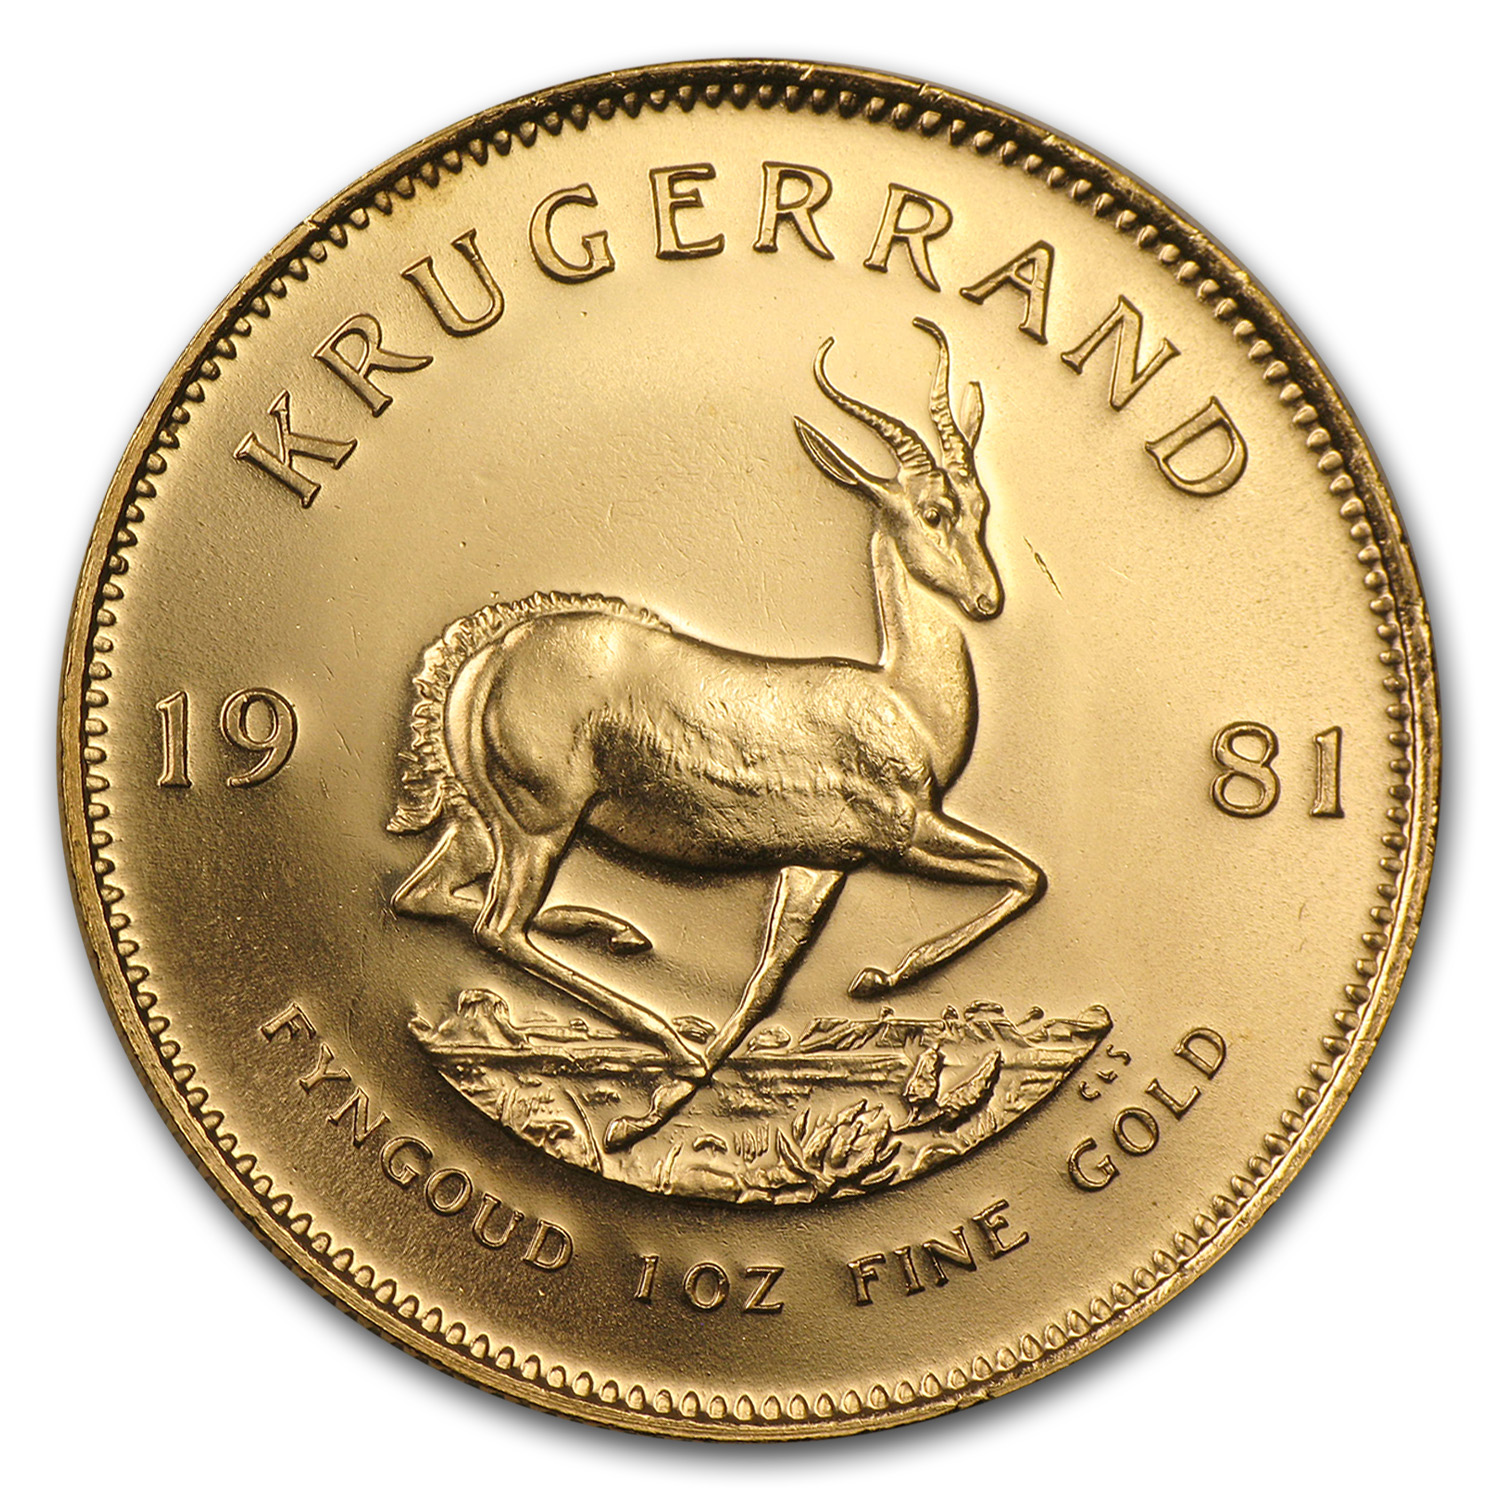 1981 South Africa 1 oz Gold Krugerrand